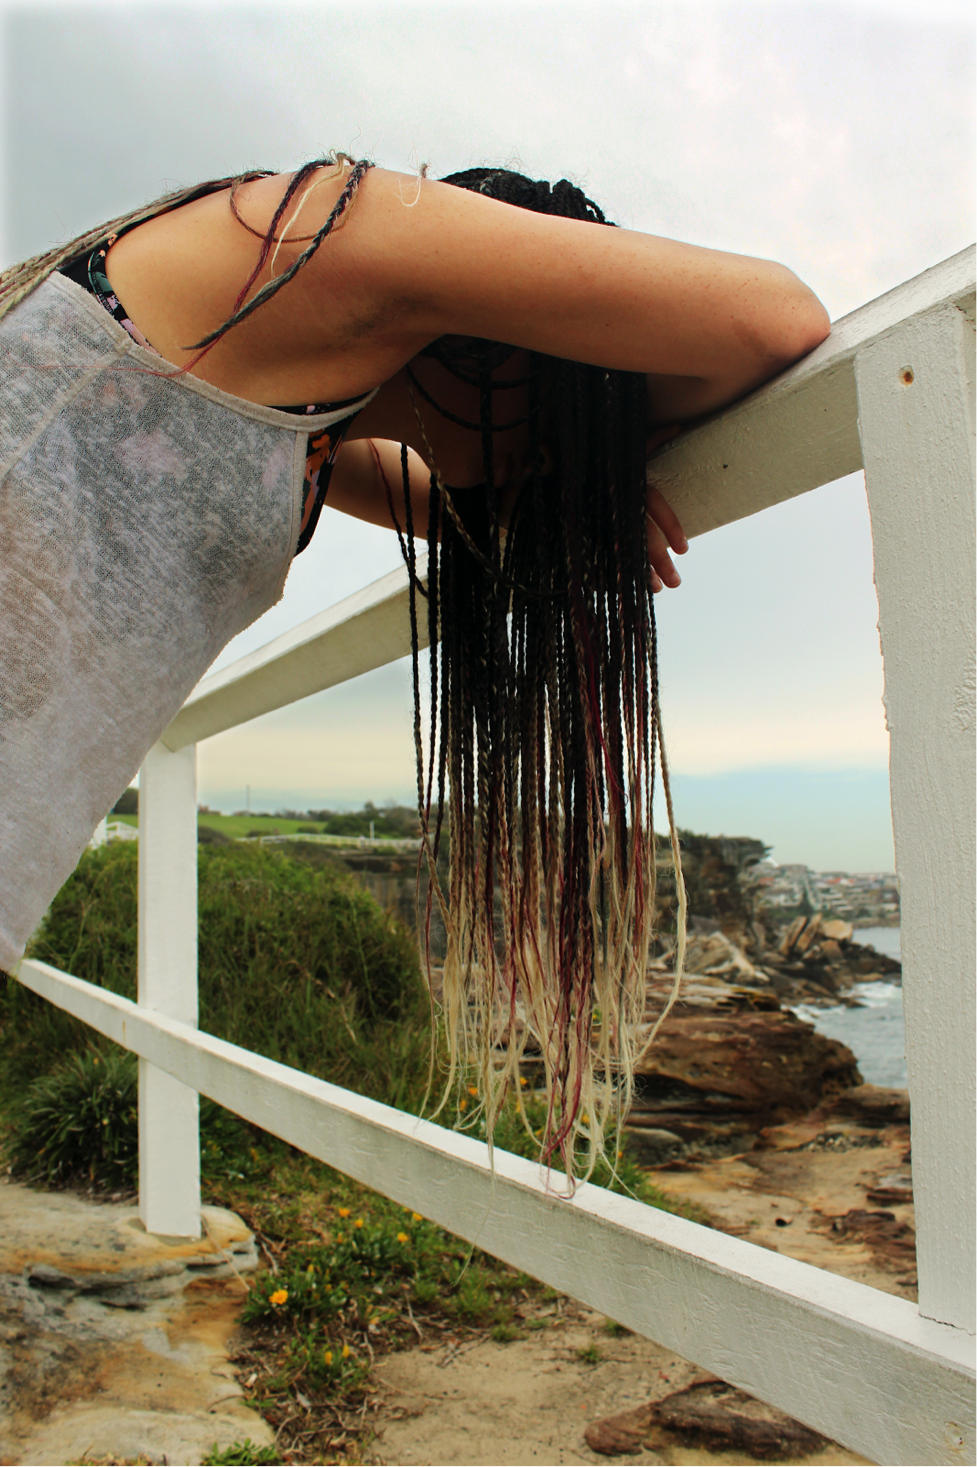 [image description: Ria is leaning her head and crossed arms on a white fence. She has long, brown braids which are magenta and blonde at the tips. You cannot see her face.]